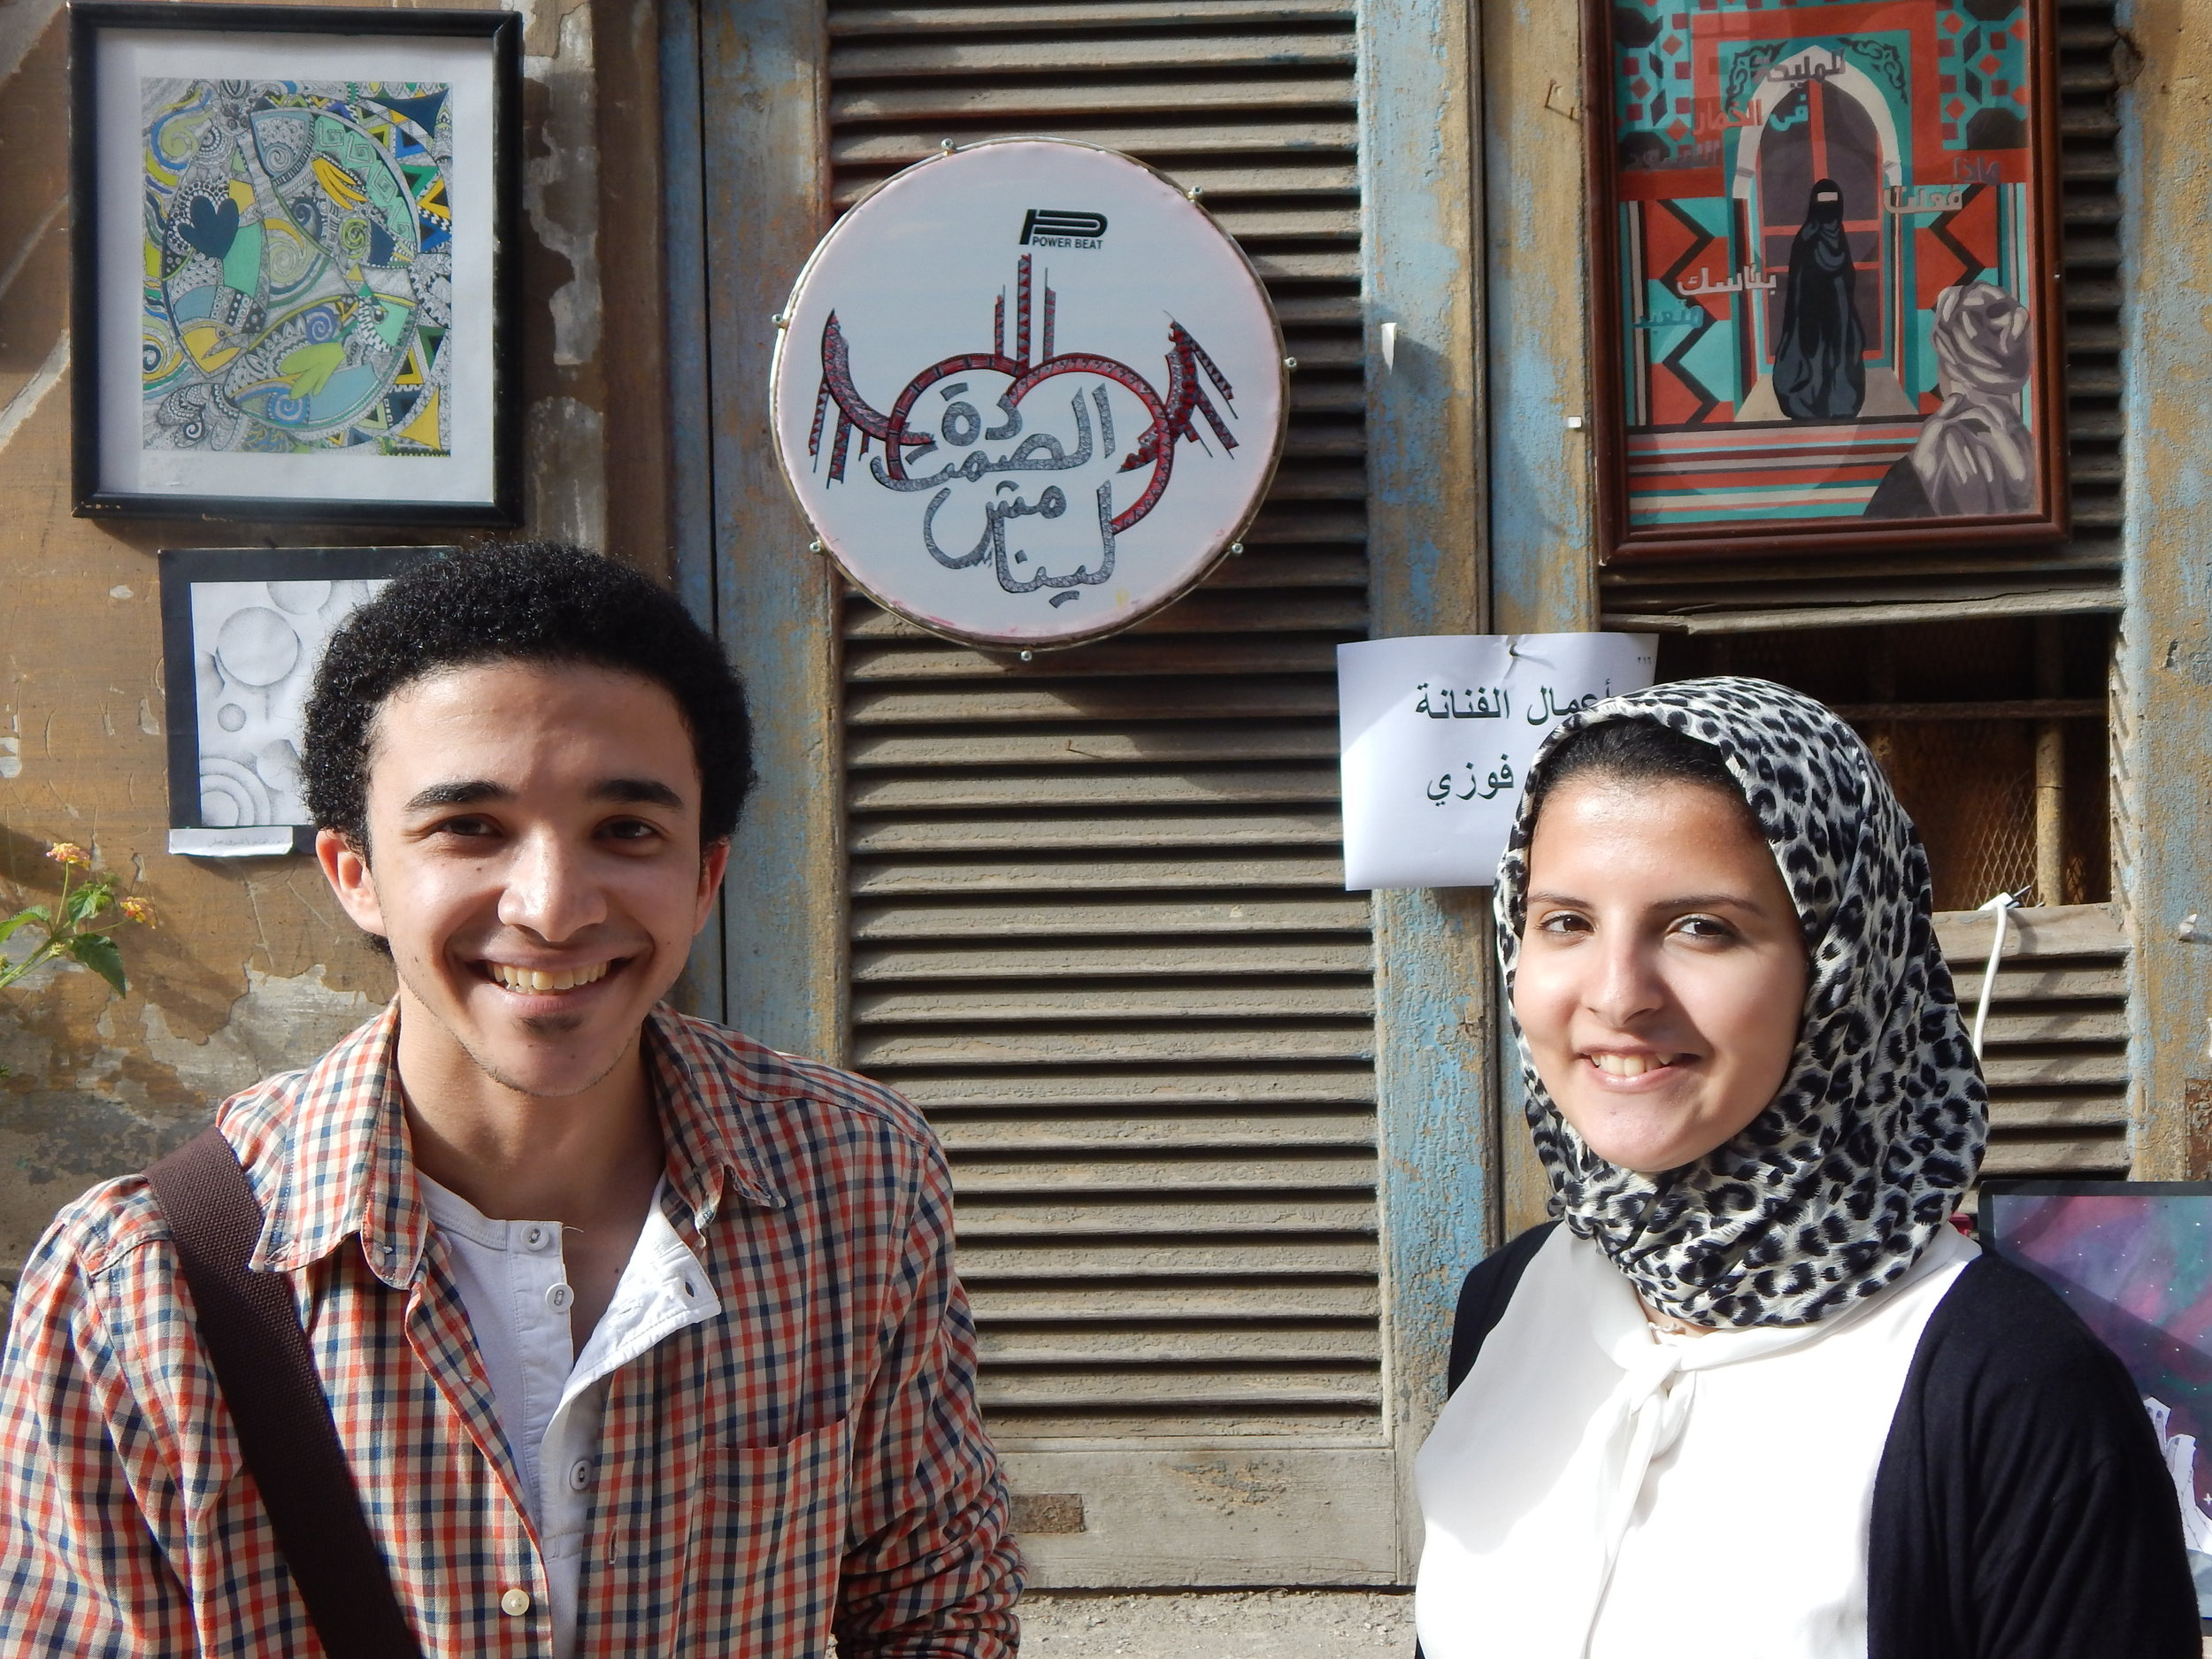 Bassant Fawzy (right) with her friend Ibrahim Mohamed. [Photo by Jayson Casper.]